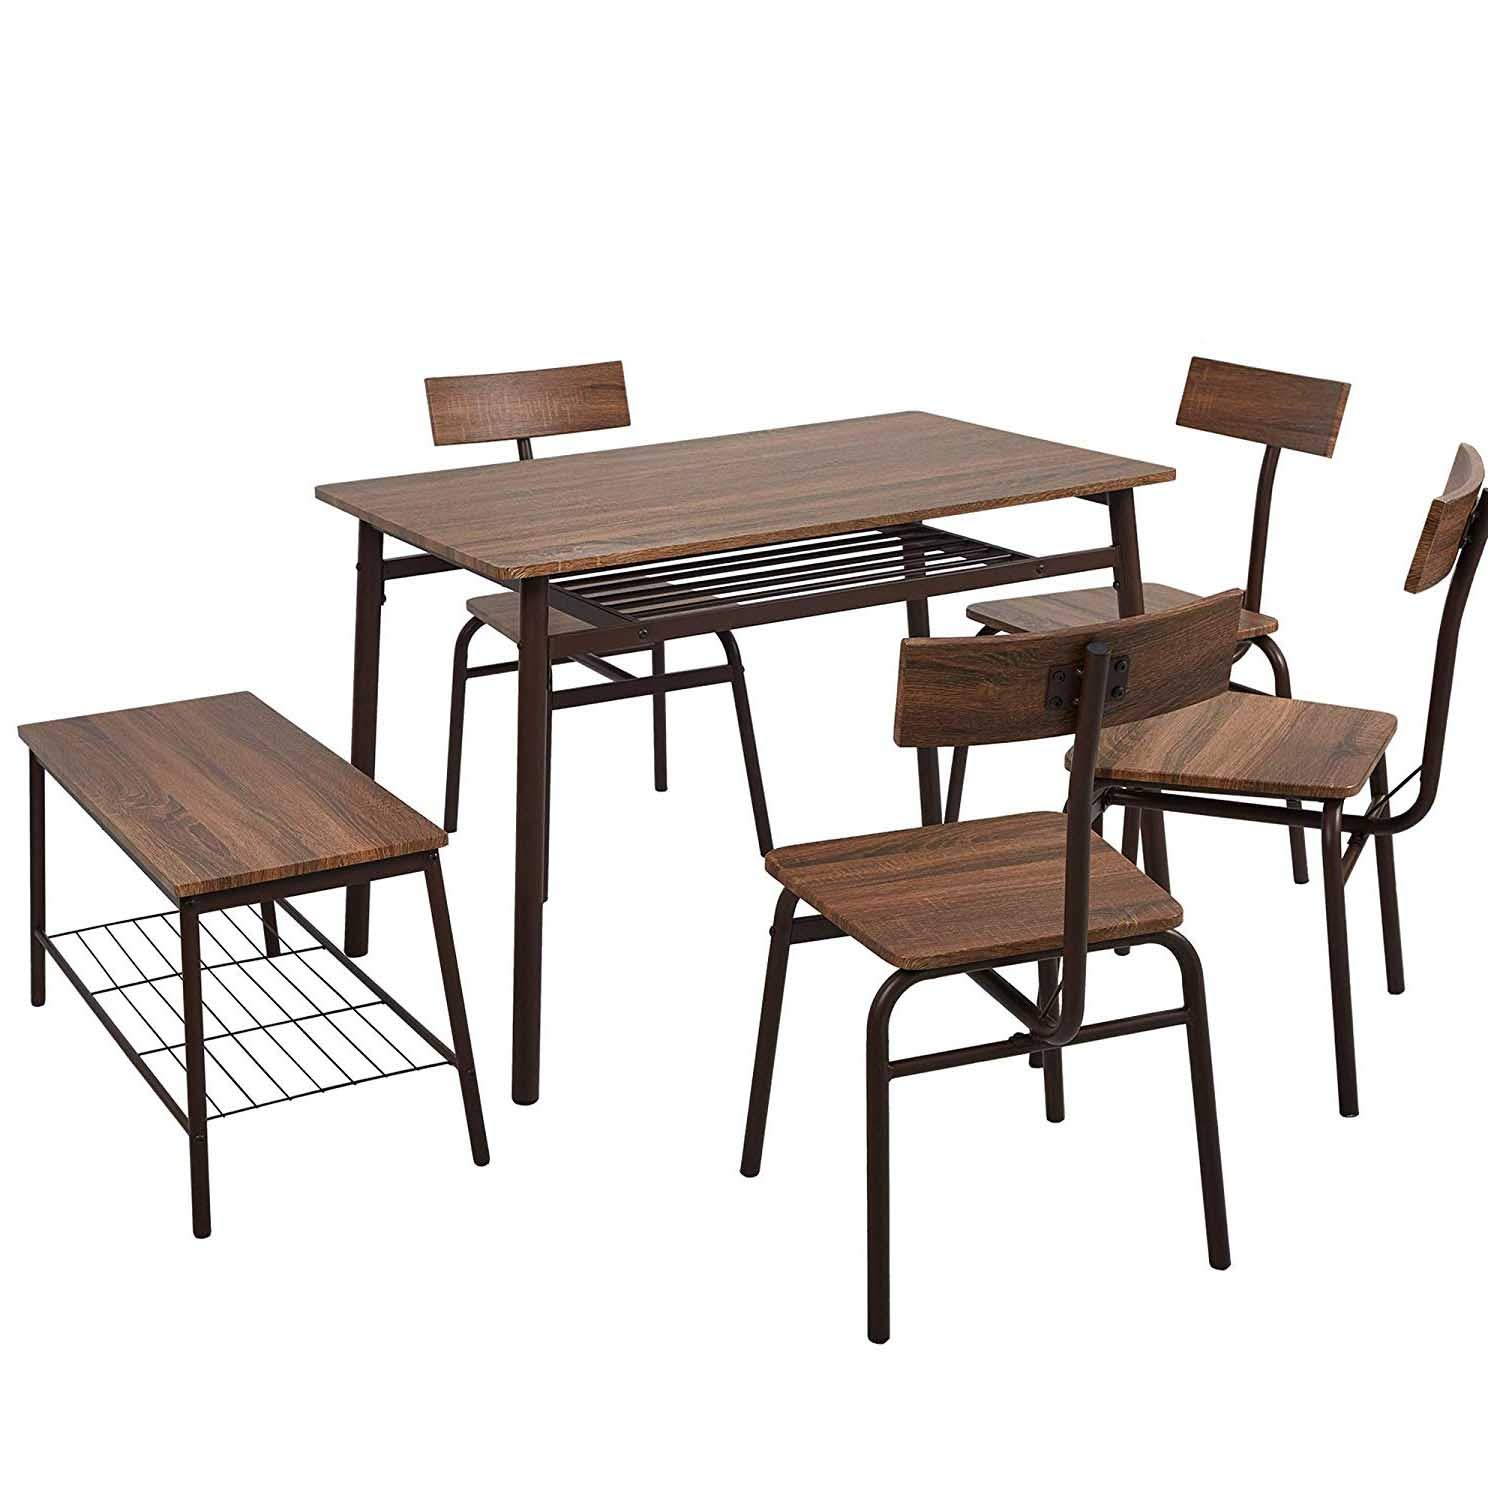 KARMAS PRODUCT 6 Piece Wooden Dining Table Set W/4 Chairs & 1 Bench Retro Style Home Kitchen Breakfast Furniture,Brown